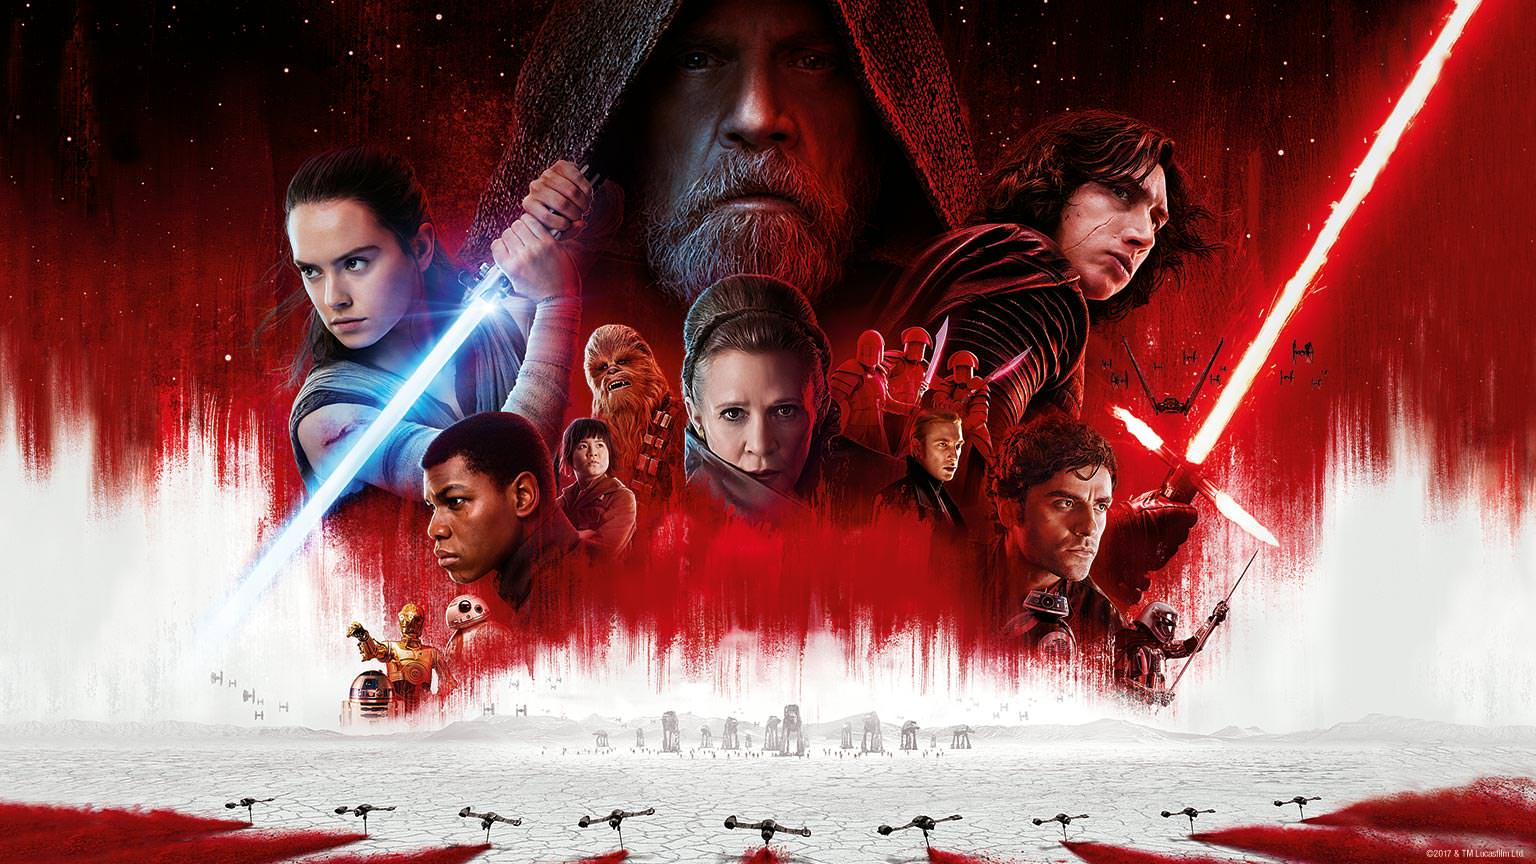 Star Wars: The Last Jedi (Photo: Lucasfilm)